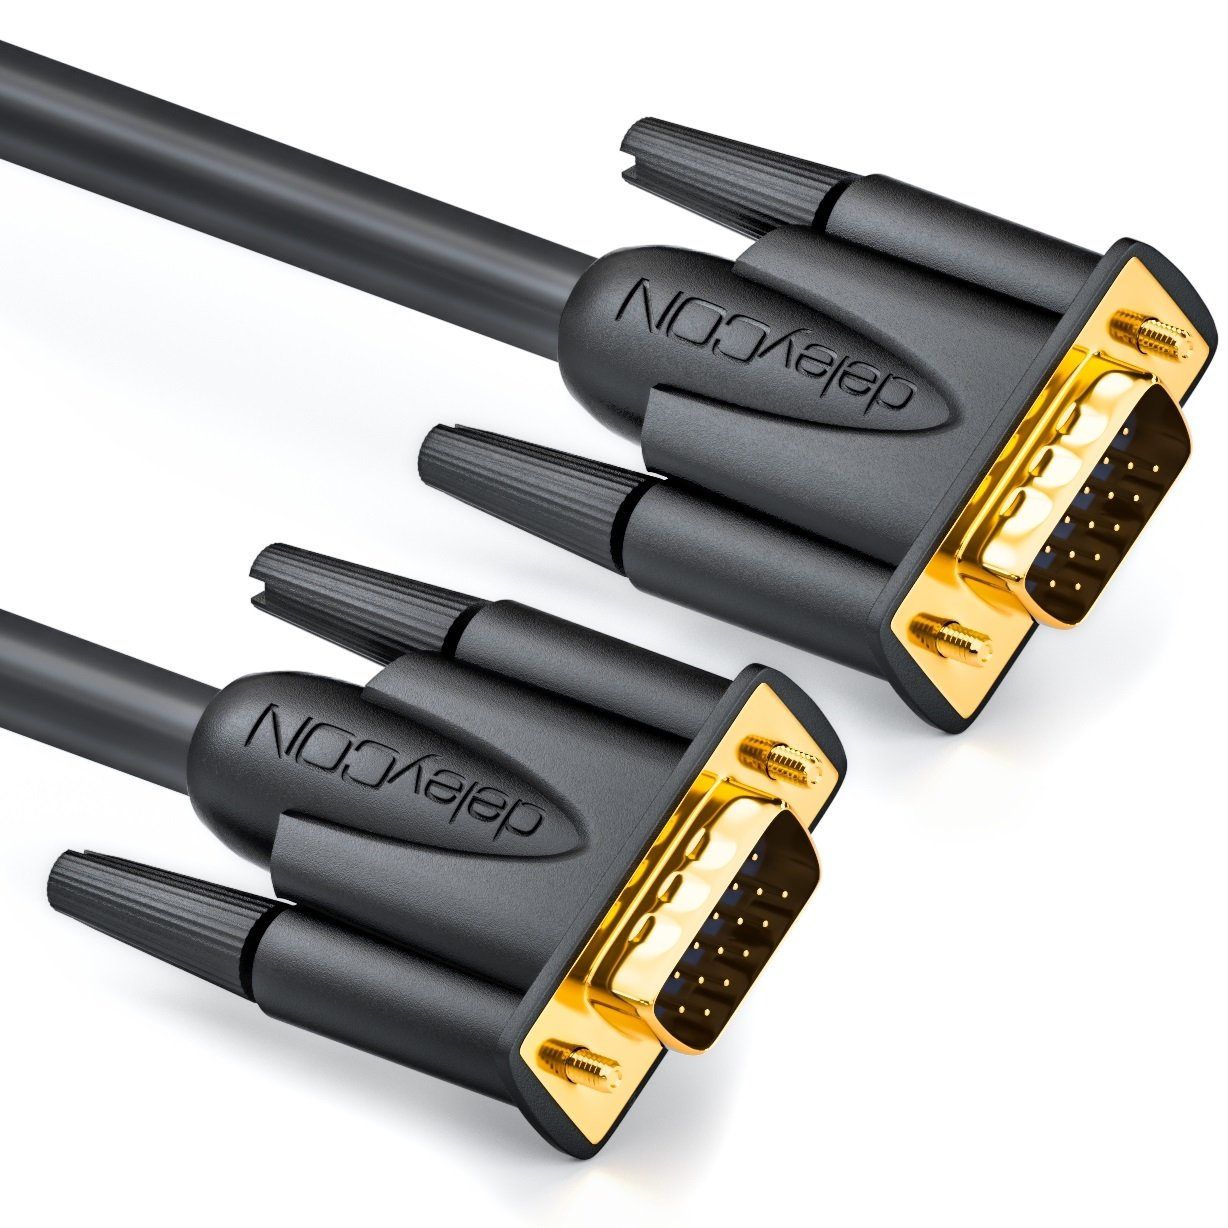 deleyCON 15m S-VGA Monitor Cable - VGA 15-Pin Cable D-Sub Connector Full HD Triple-Shielded Kink Protection Gold-Plated Contacts - Black